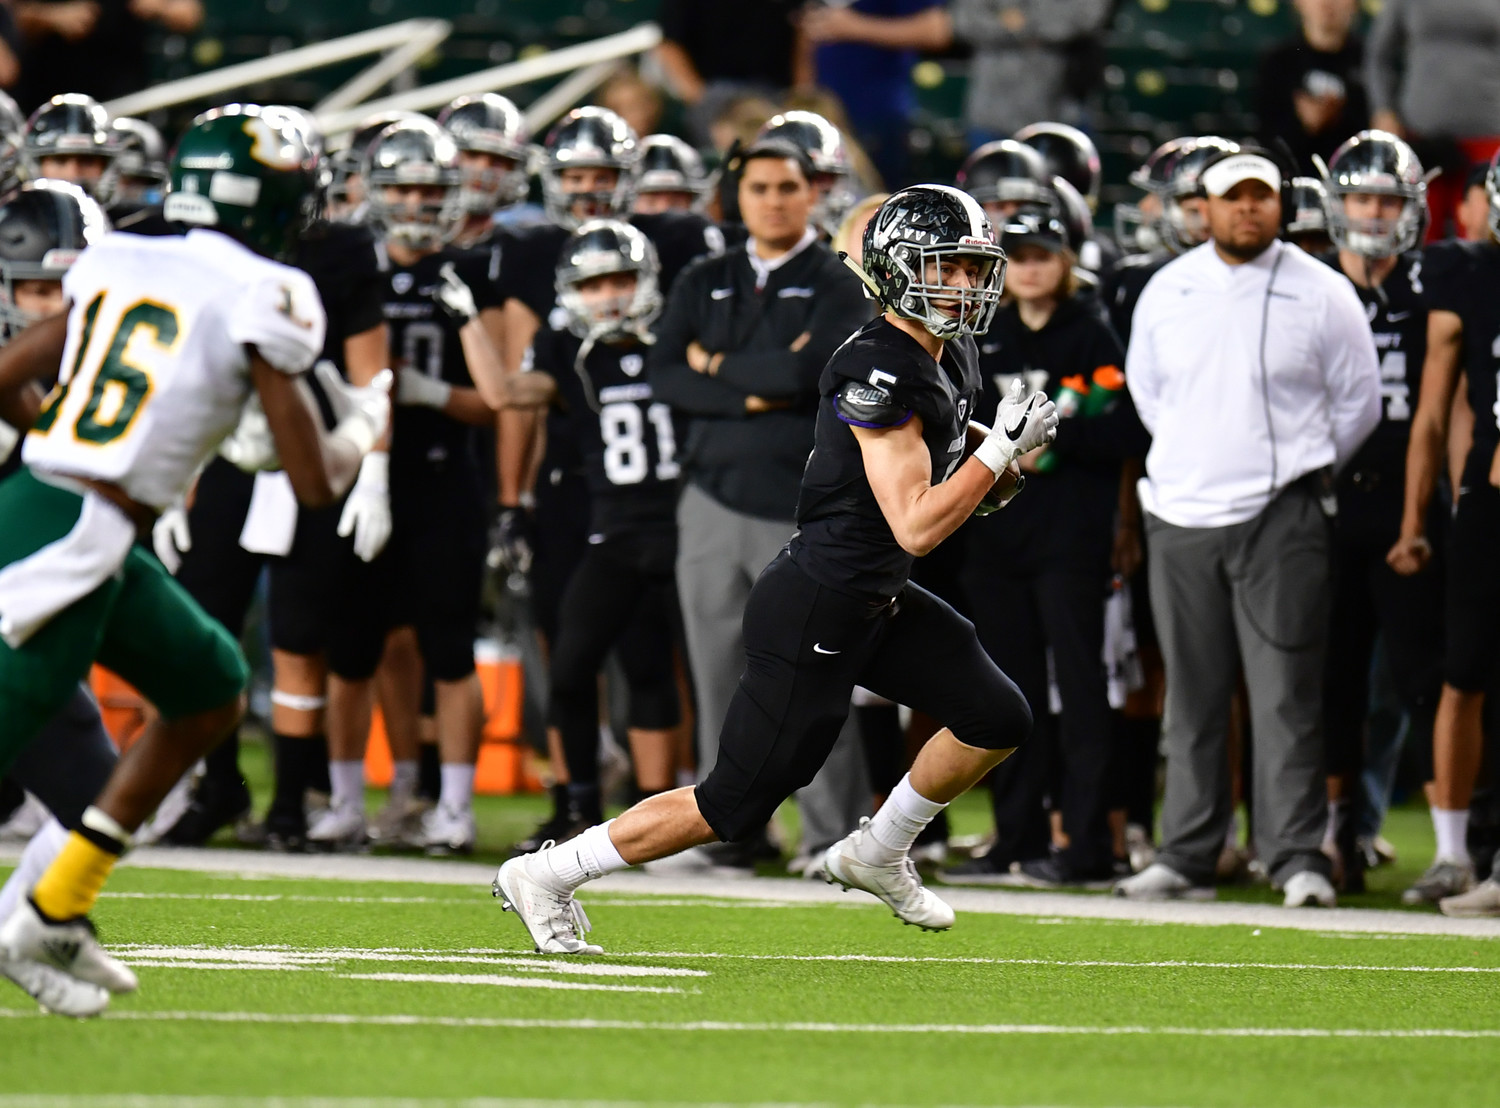 Brendan Bennett and Vandegrift fell to Longview 56-28 in the regional semifinals Saturday at McLane Stadium in Waco.